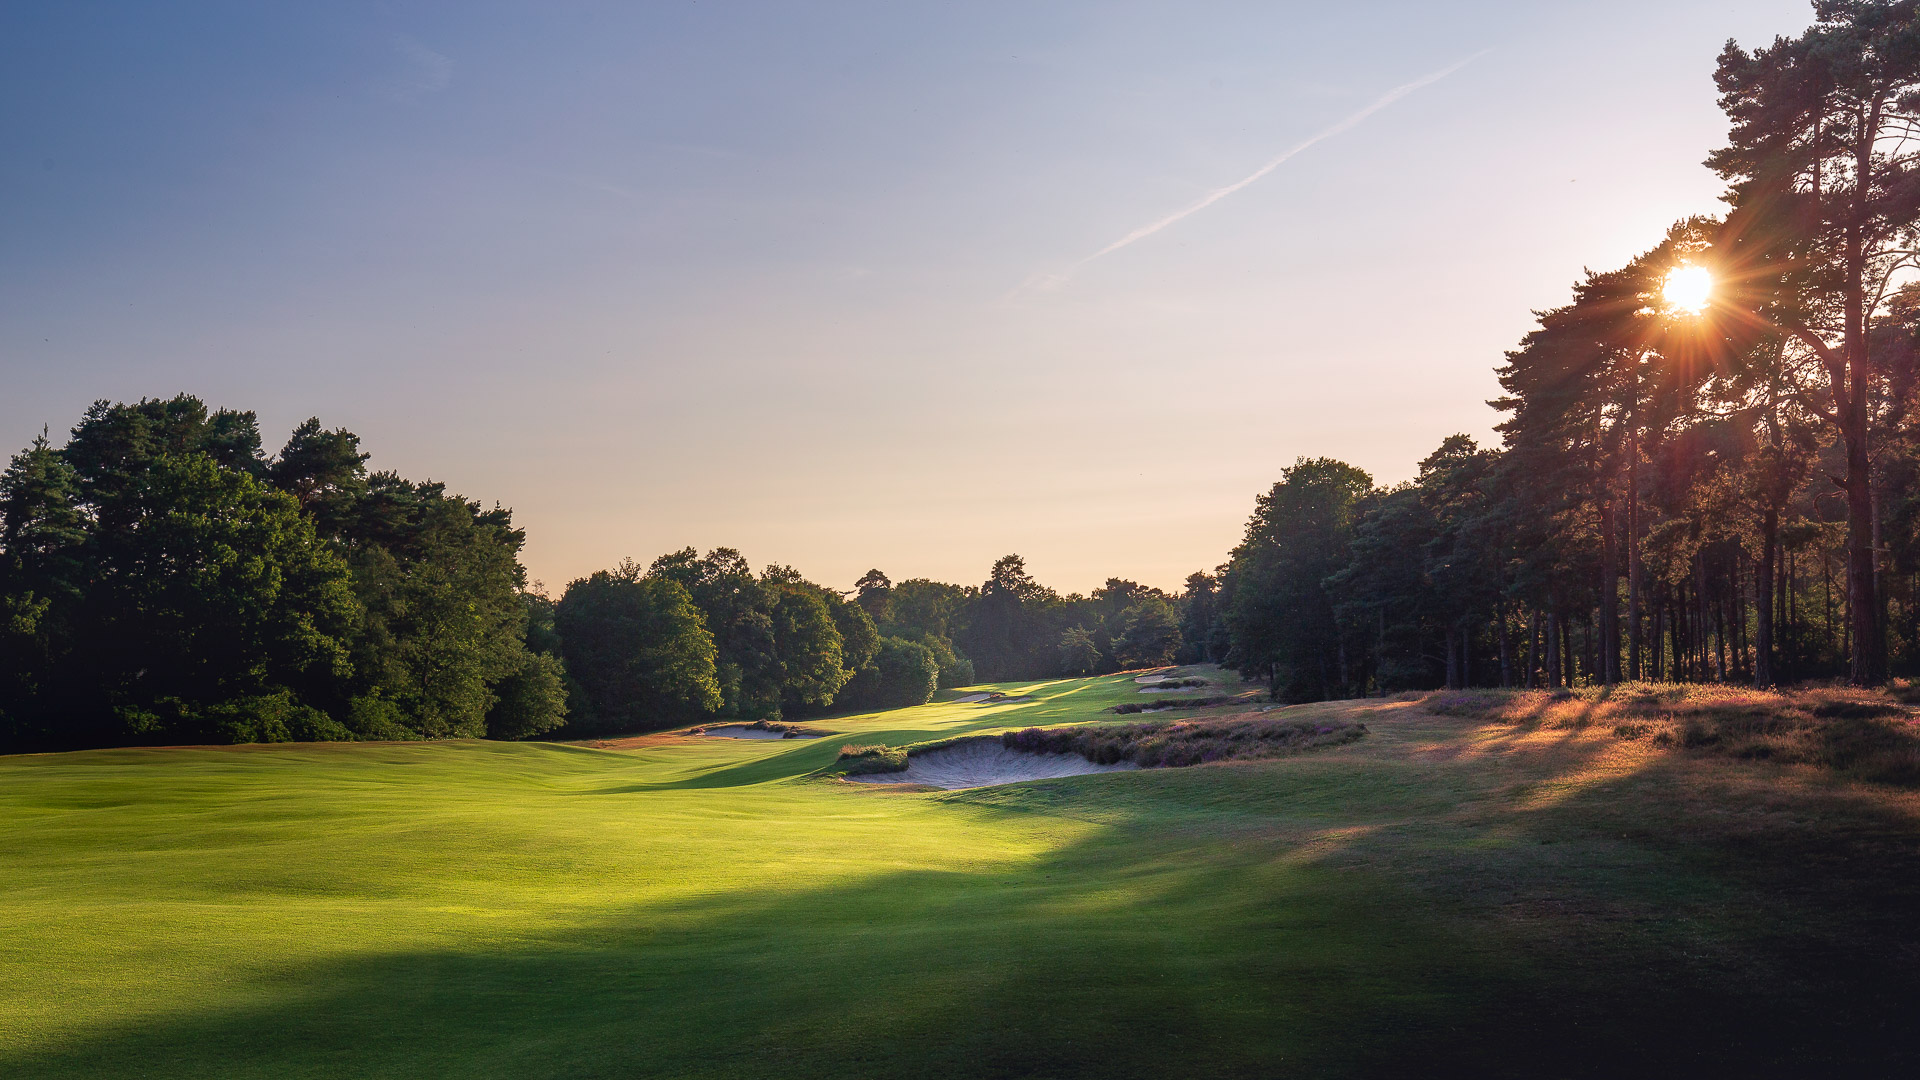 15th-Hole-St-Georges-Hill-Golf-Club-2035-Edit